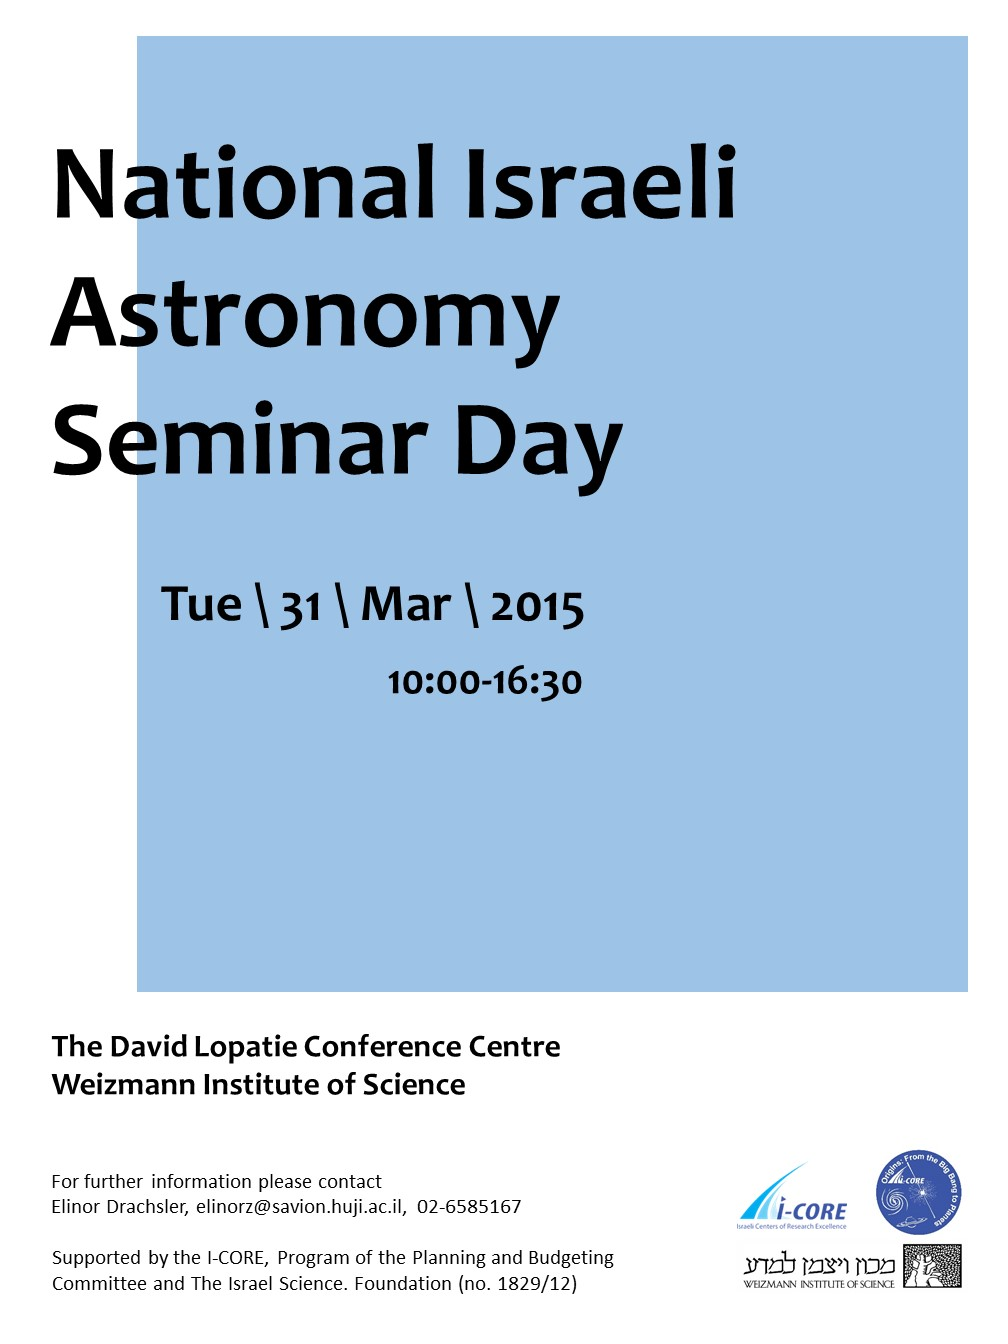 The National Israeli Astronomy Seminar Day poster